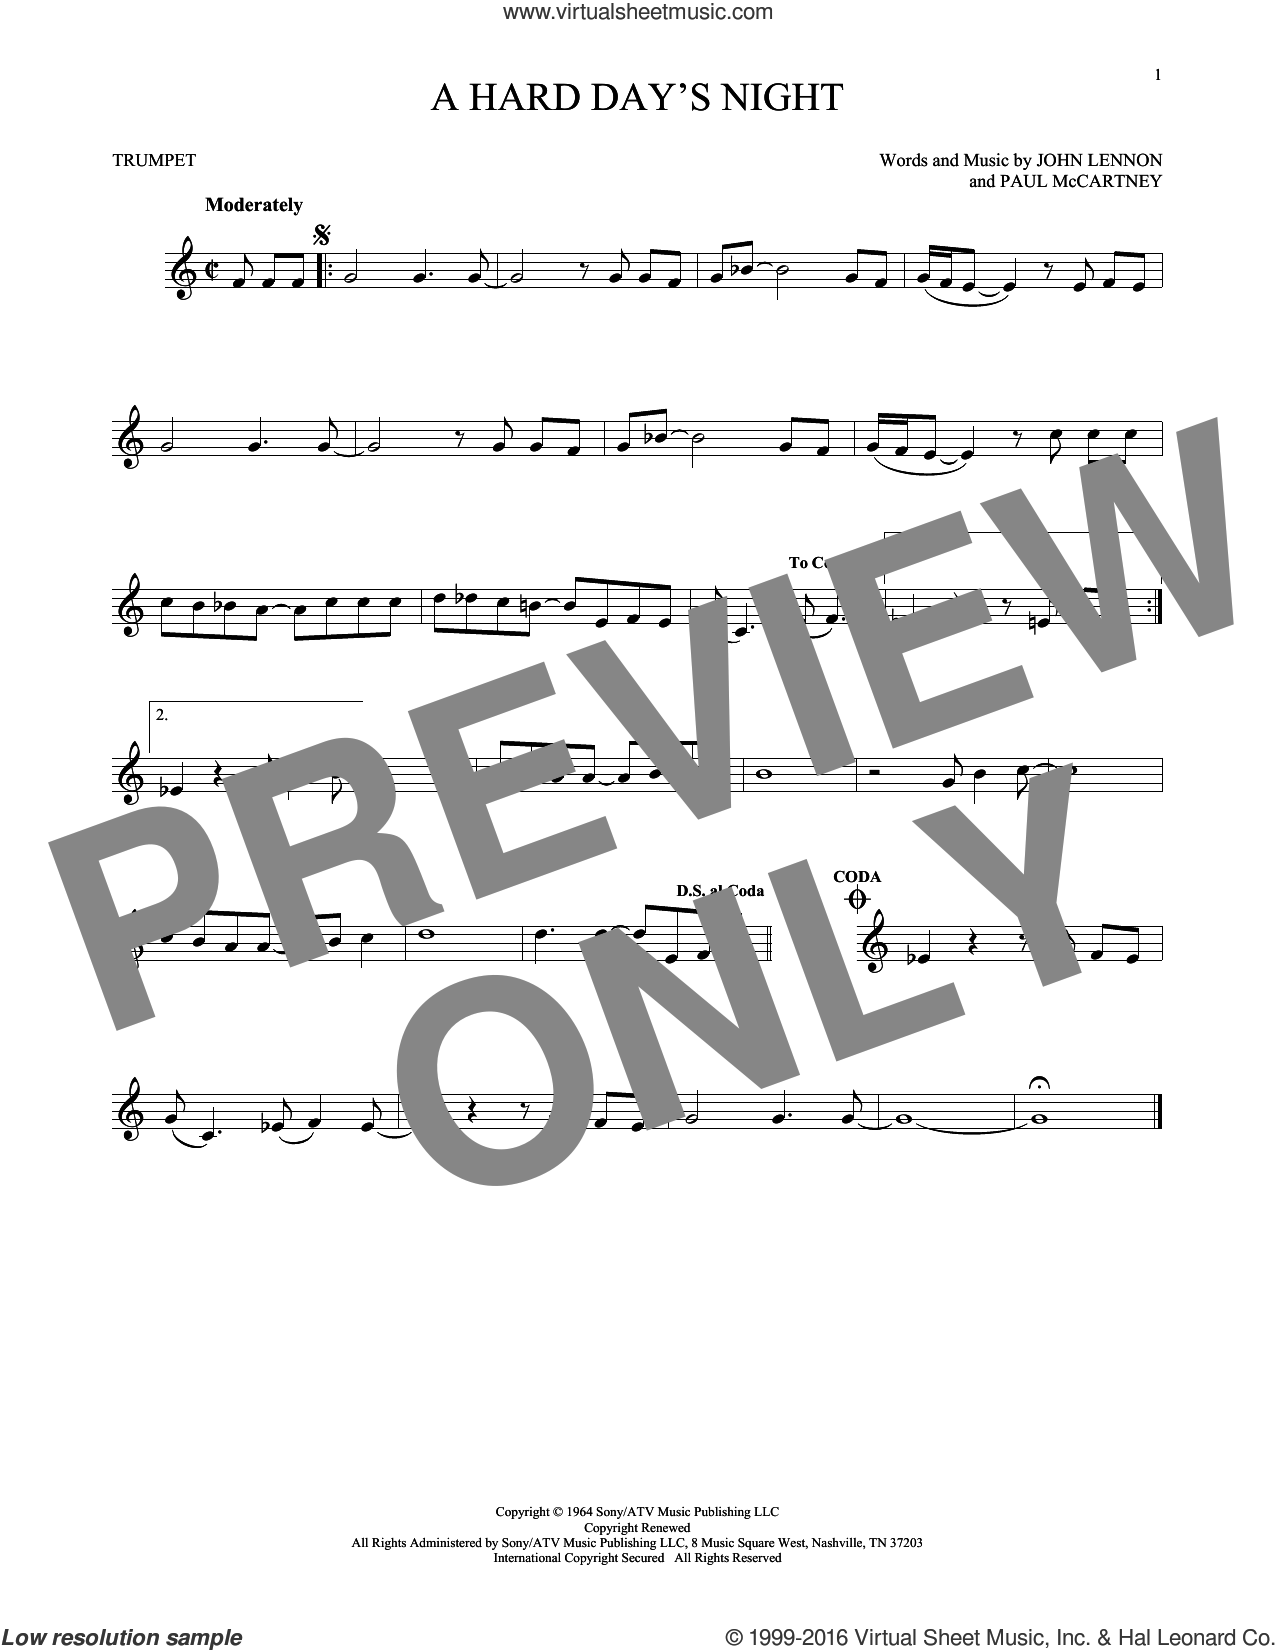 A Hard Day's Night sheet music for trumpet solo by The Beatles, John Lennon and Paul McCartney, intermediate skill level